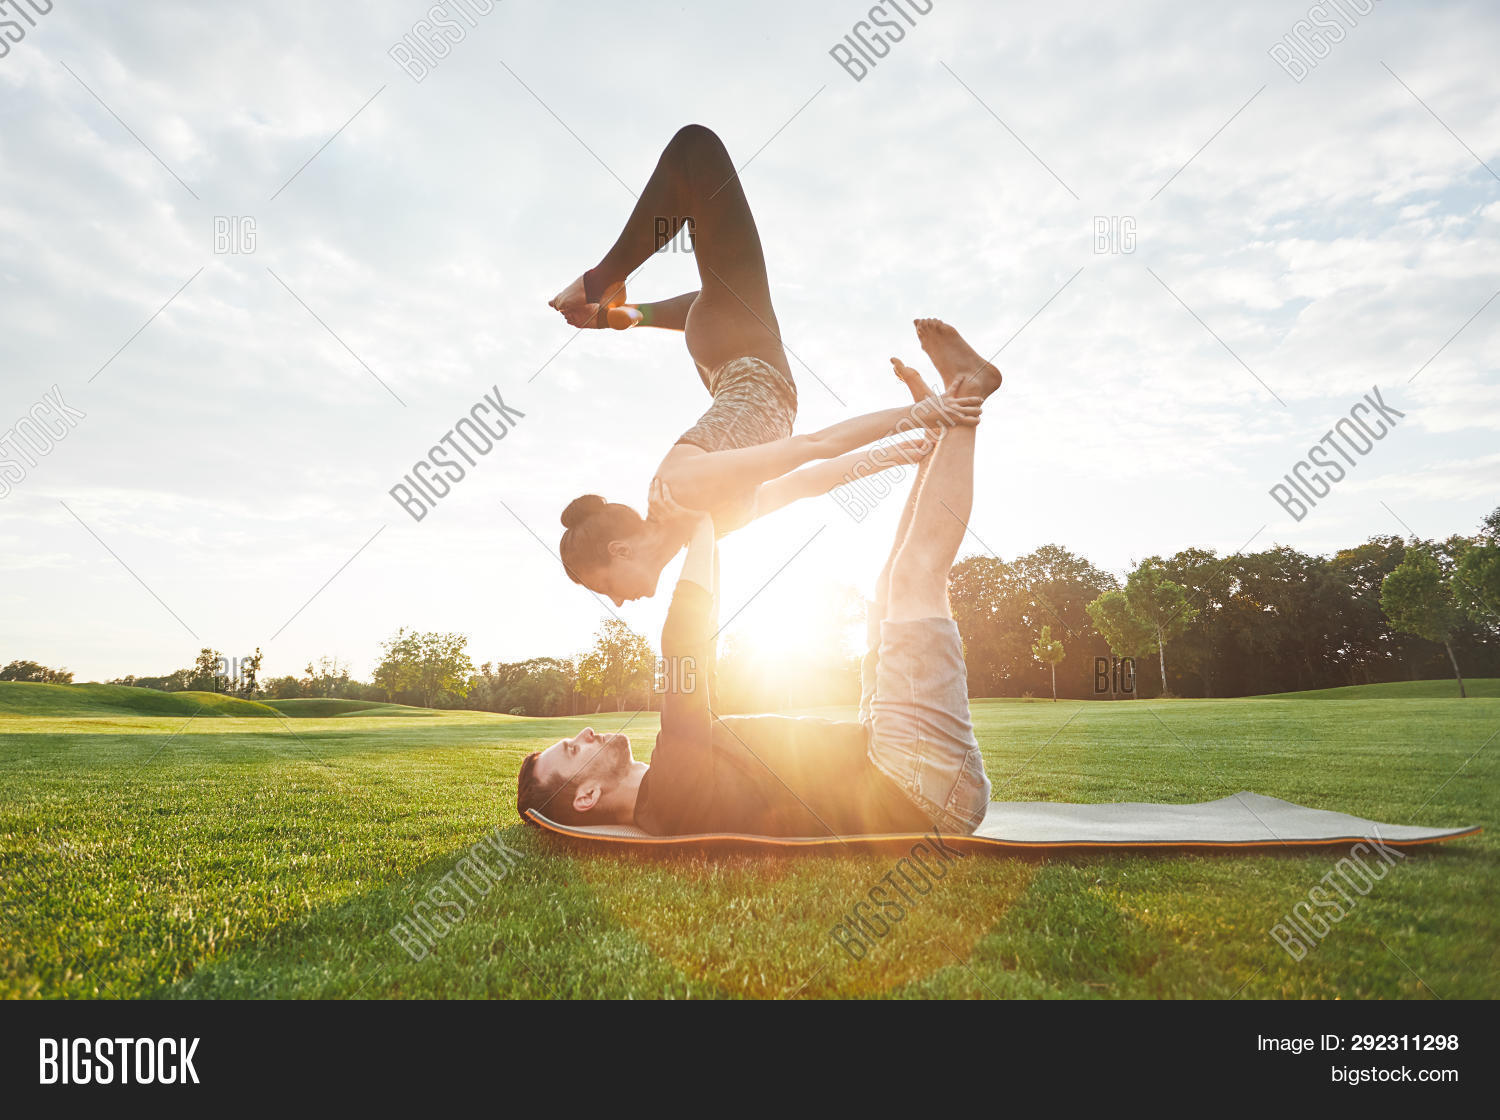 acro,acro-yoga,acrobatics,acroyoga,adult,balance,beautiful,beauty,body,care,caucasian,copy,couple,exercising,feet,female,fit,flexibility,flexible,grass,hands,healthy,holding,horizontal,legs,lifestyle,lifting,male,man,morning,nature,outdoor,park,people,pose,posing,practicing,practising,side,space,strength,sunlight,together,training,two,woman,yoga,young